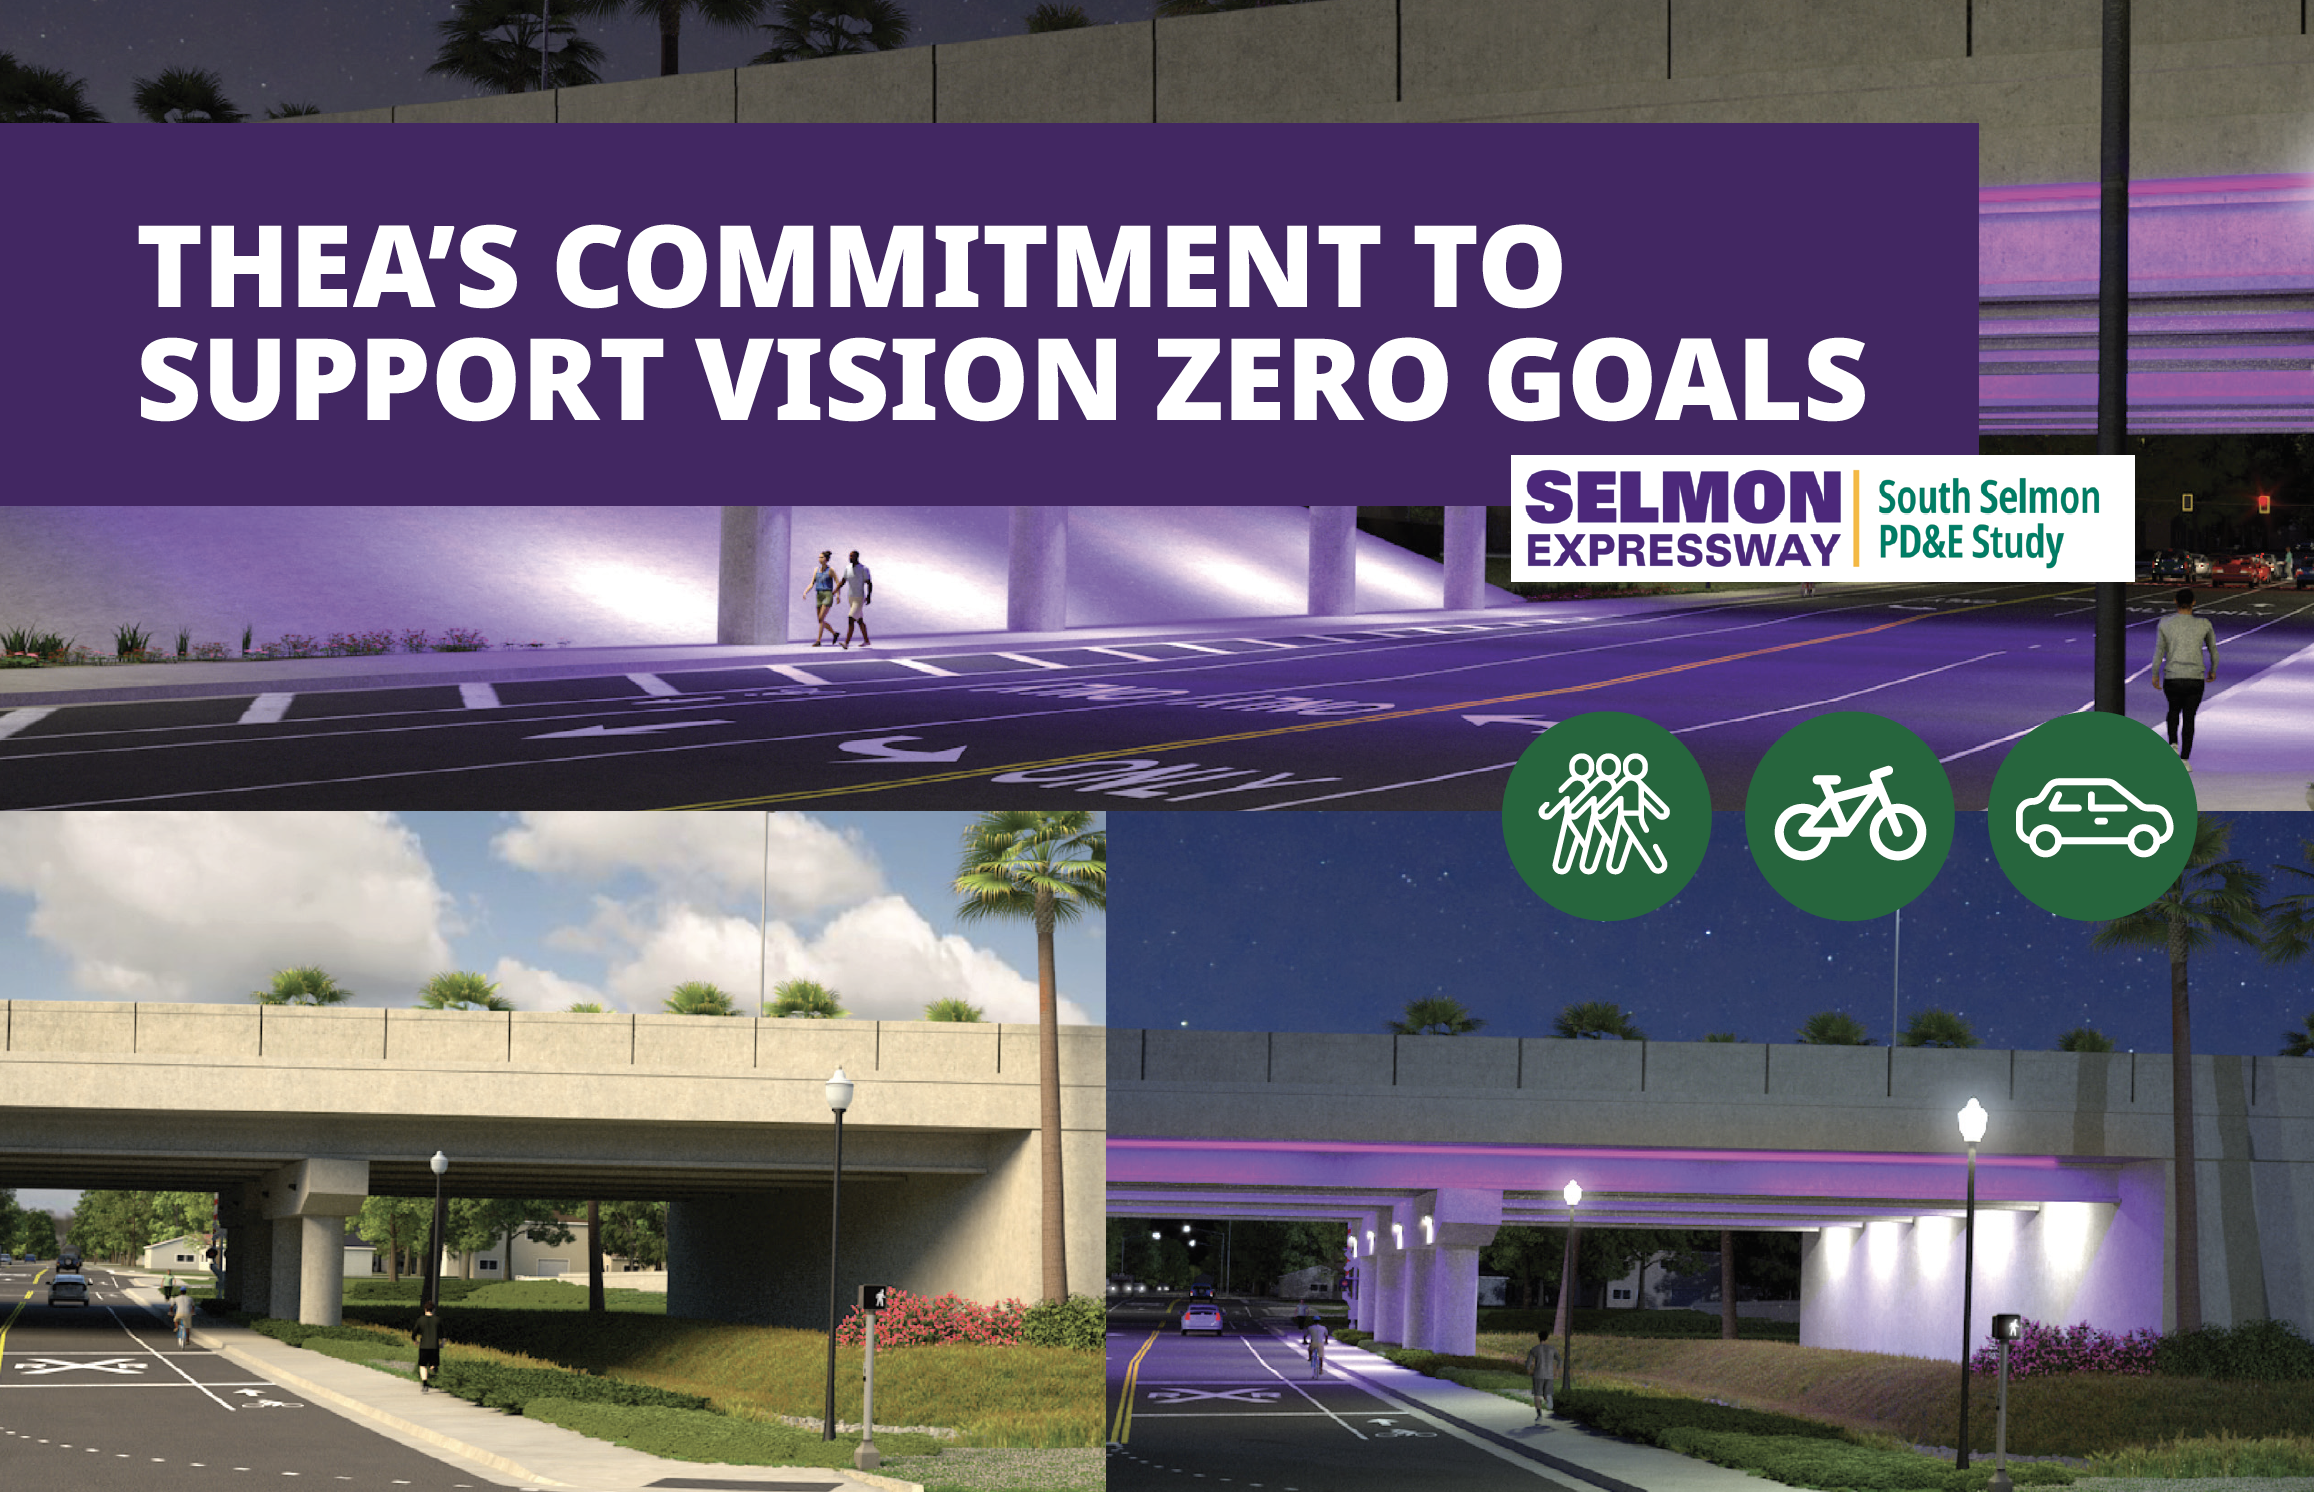 THEA Cares: Implementing Vision Zero Goals for Pedestrian Safety